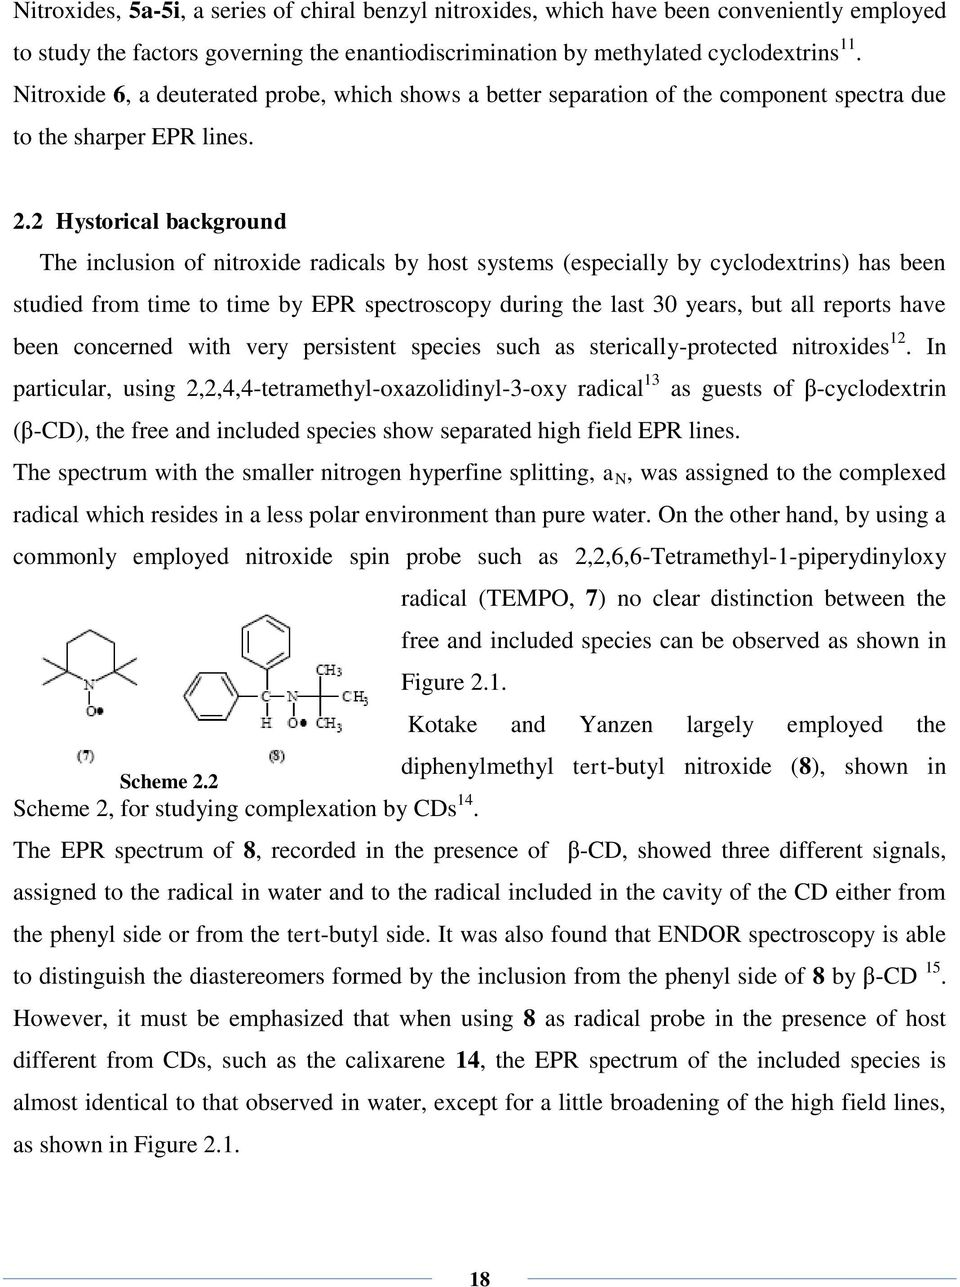 2 Hystorical background The inclusion of nitroxide radicals by host systems (especially by cyclodextrins) has been studied from time to time by EPR spectroscopy during the last 30 years, but all